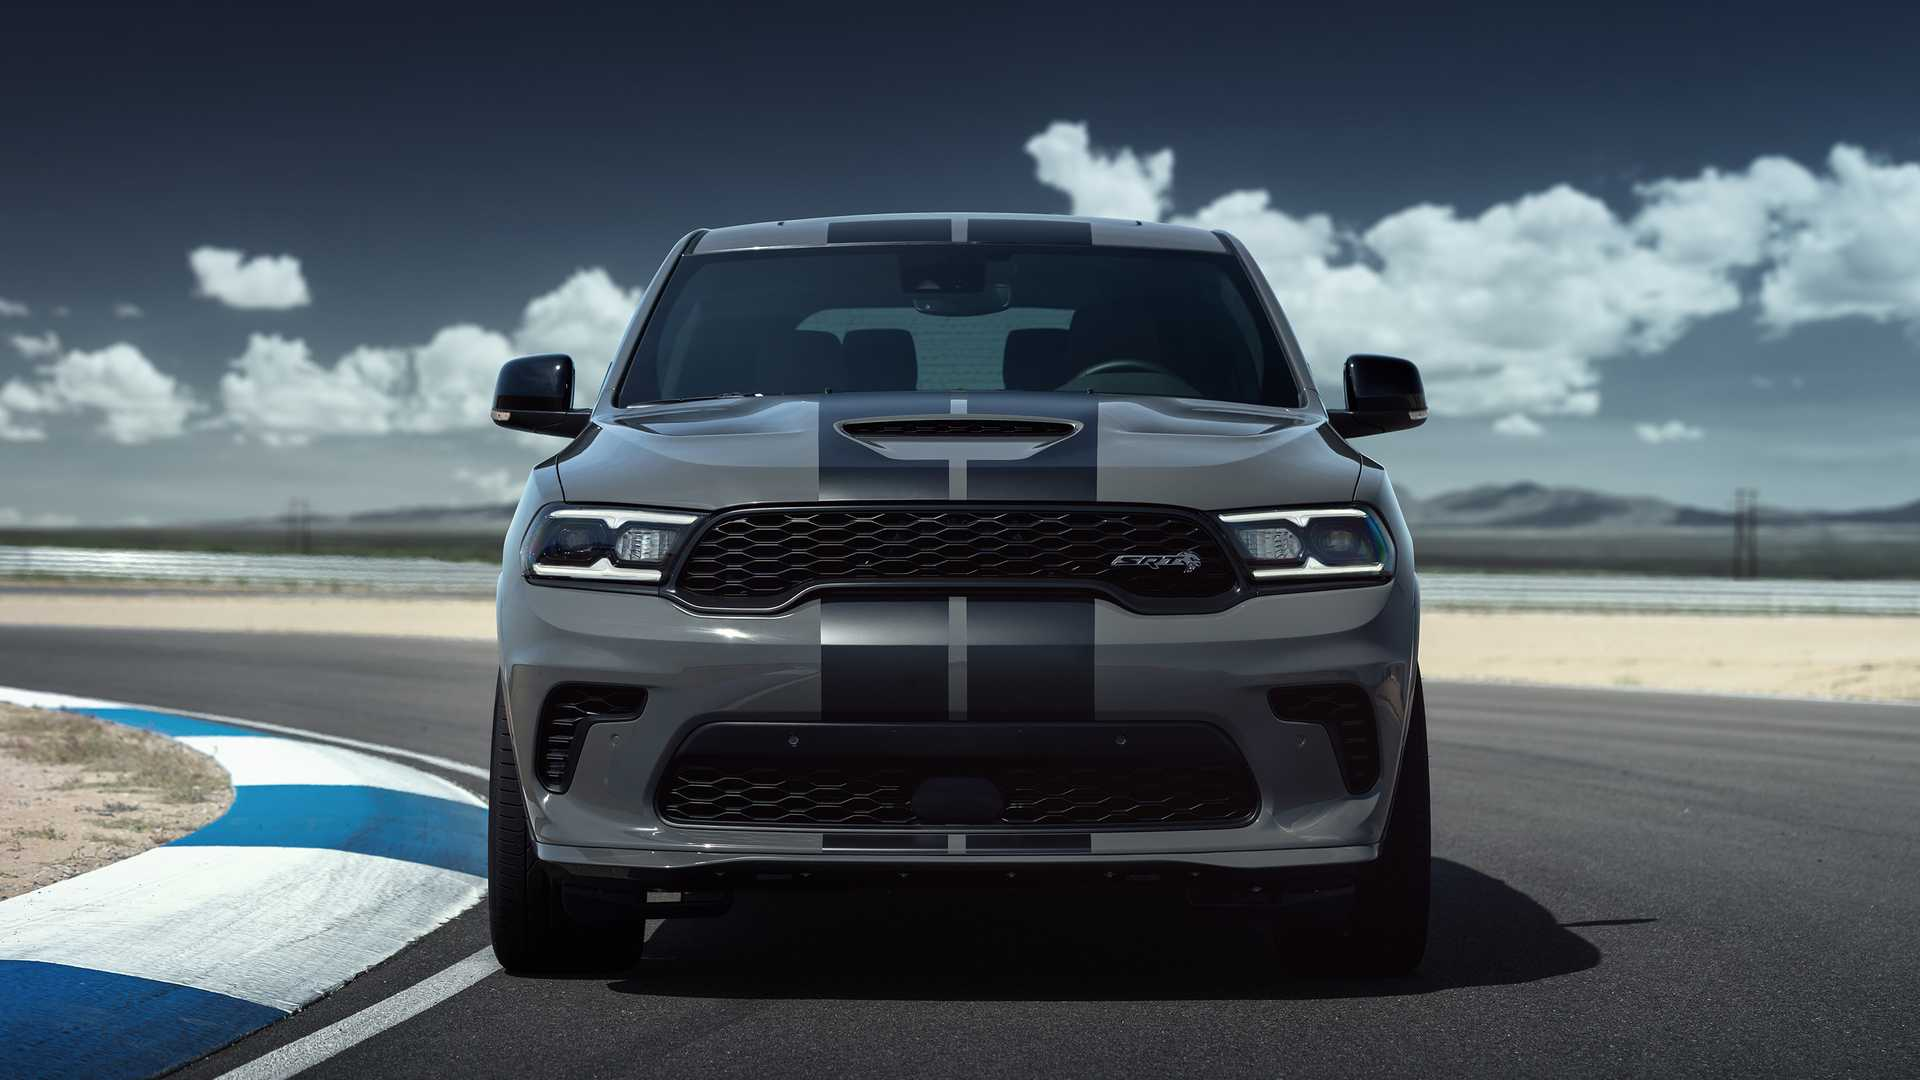 2021 Dodge Durango SRT SUV Front View